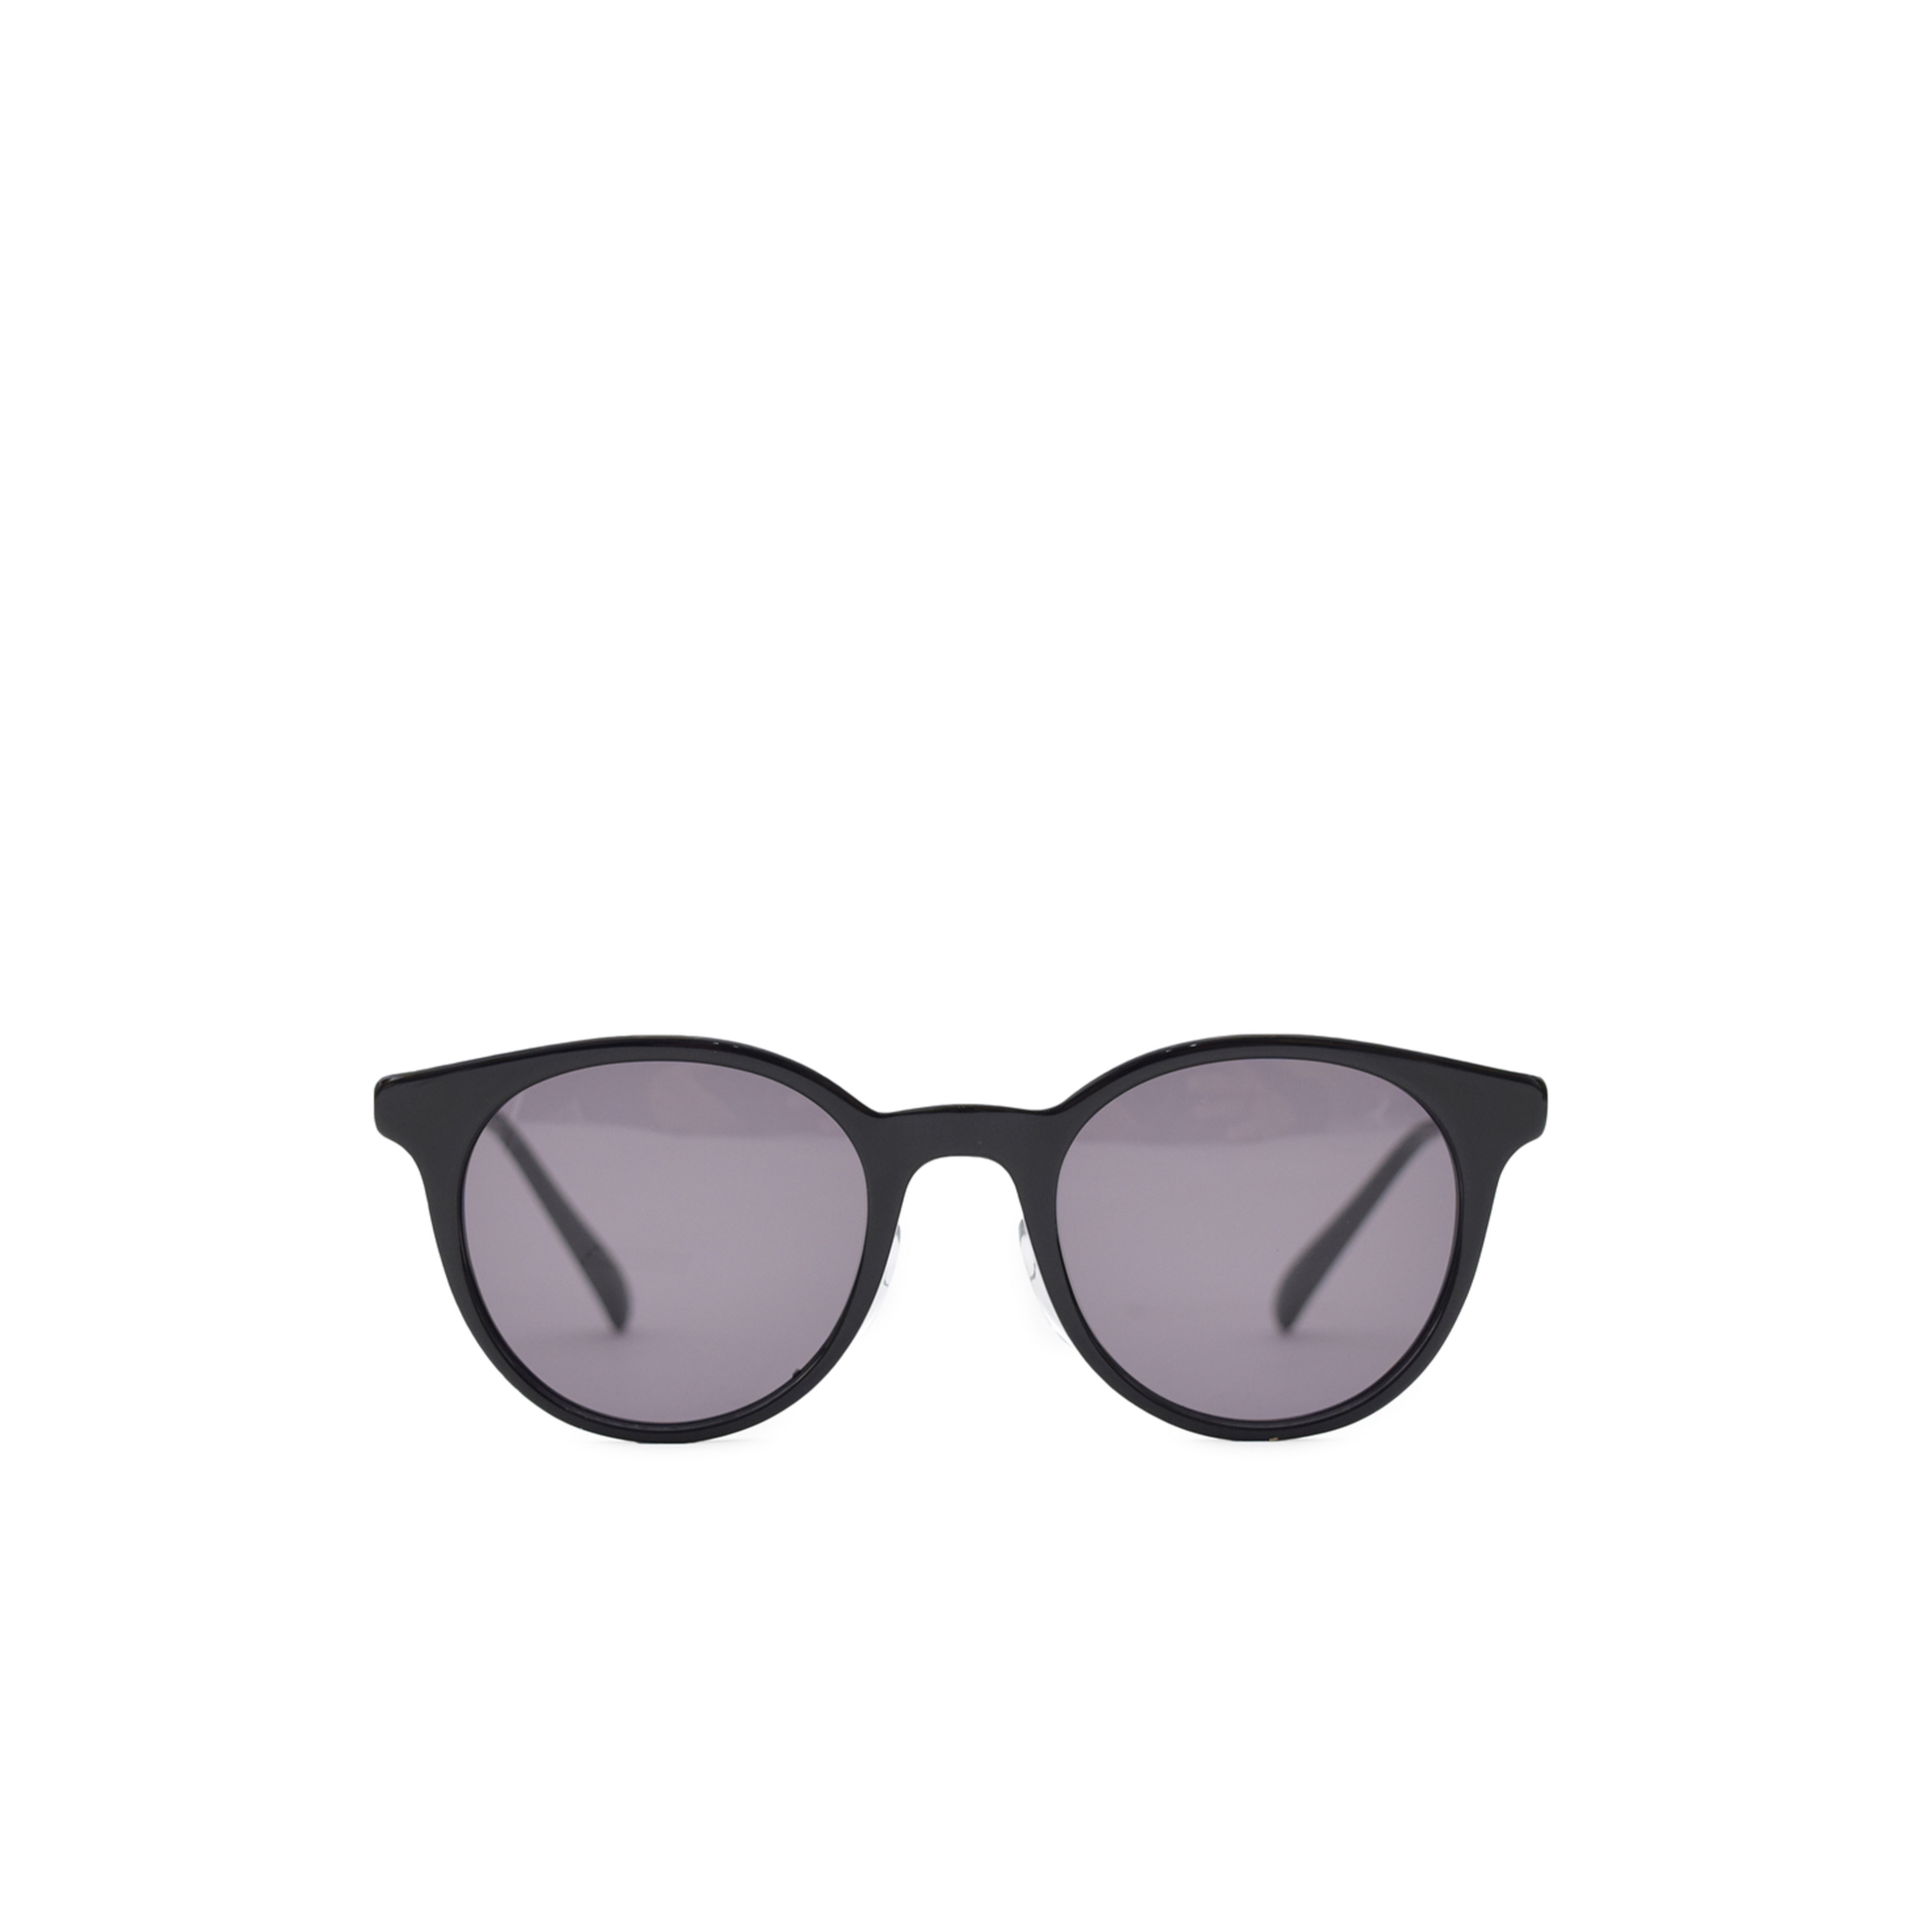 Allege × n8ise Sunglasses Girl - Black